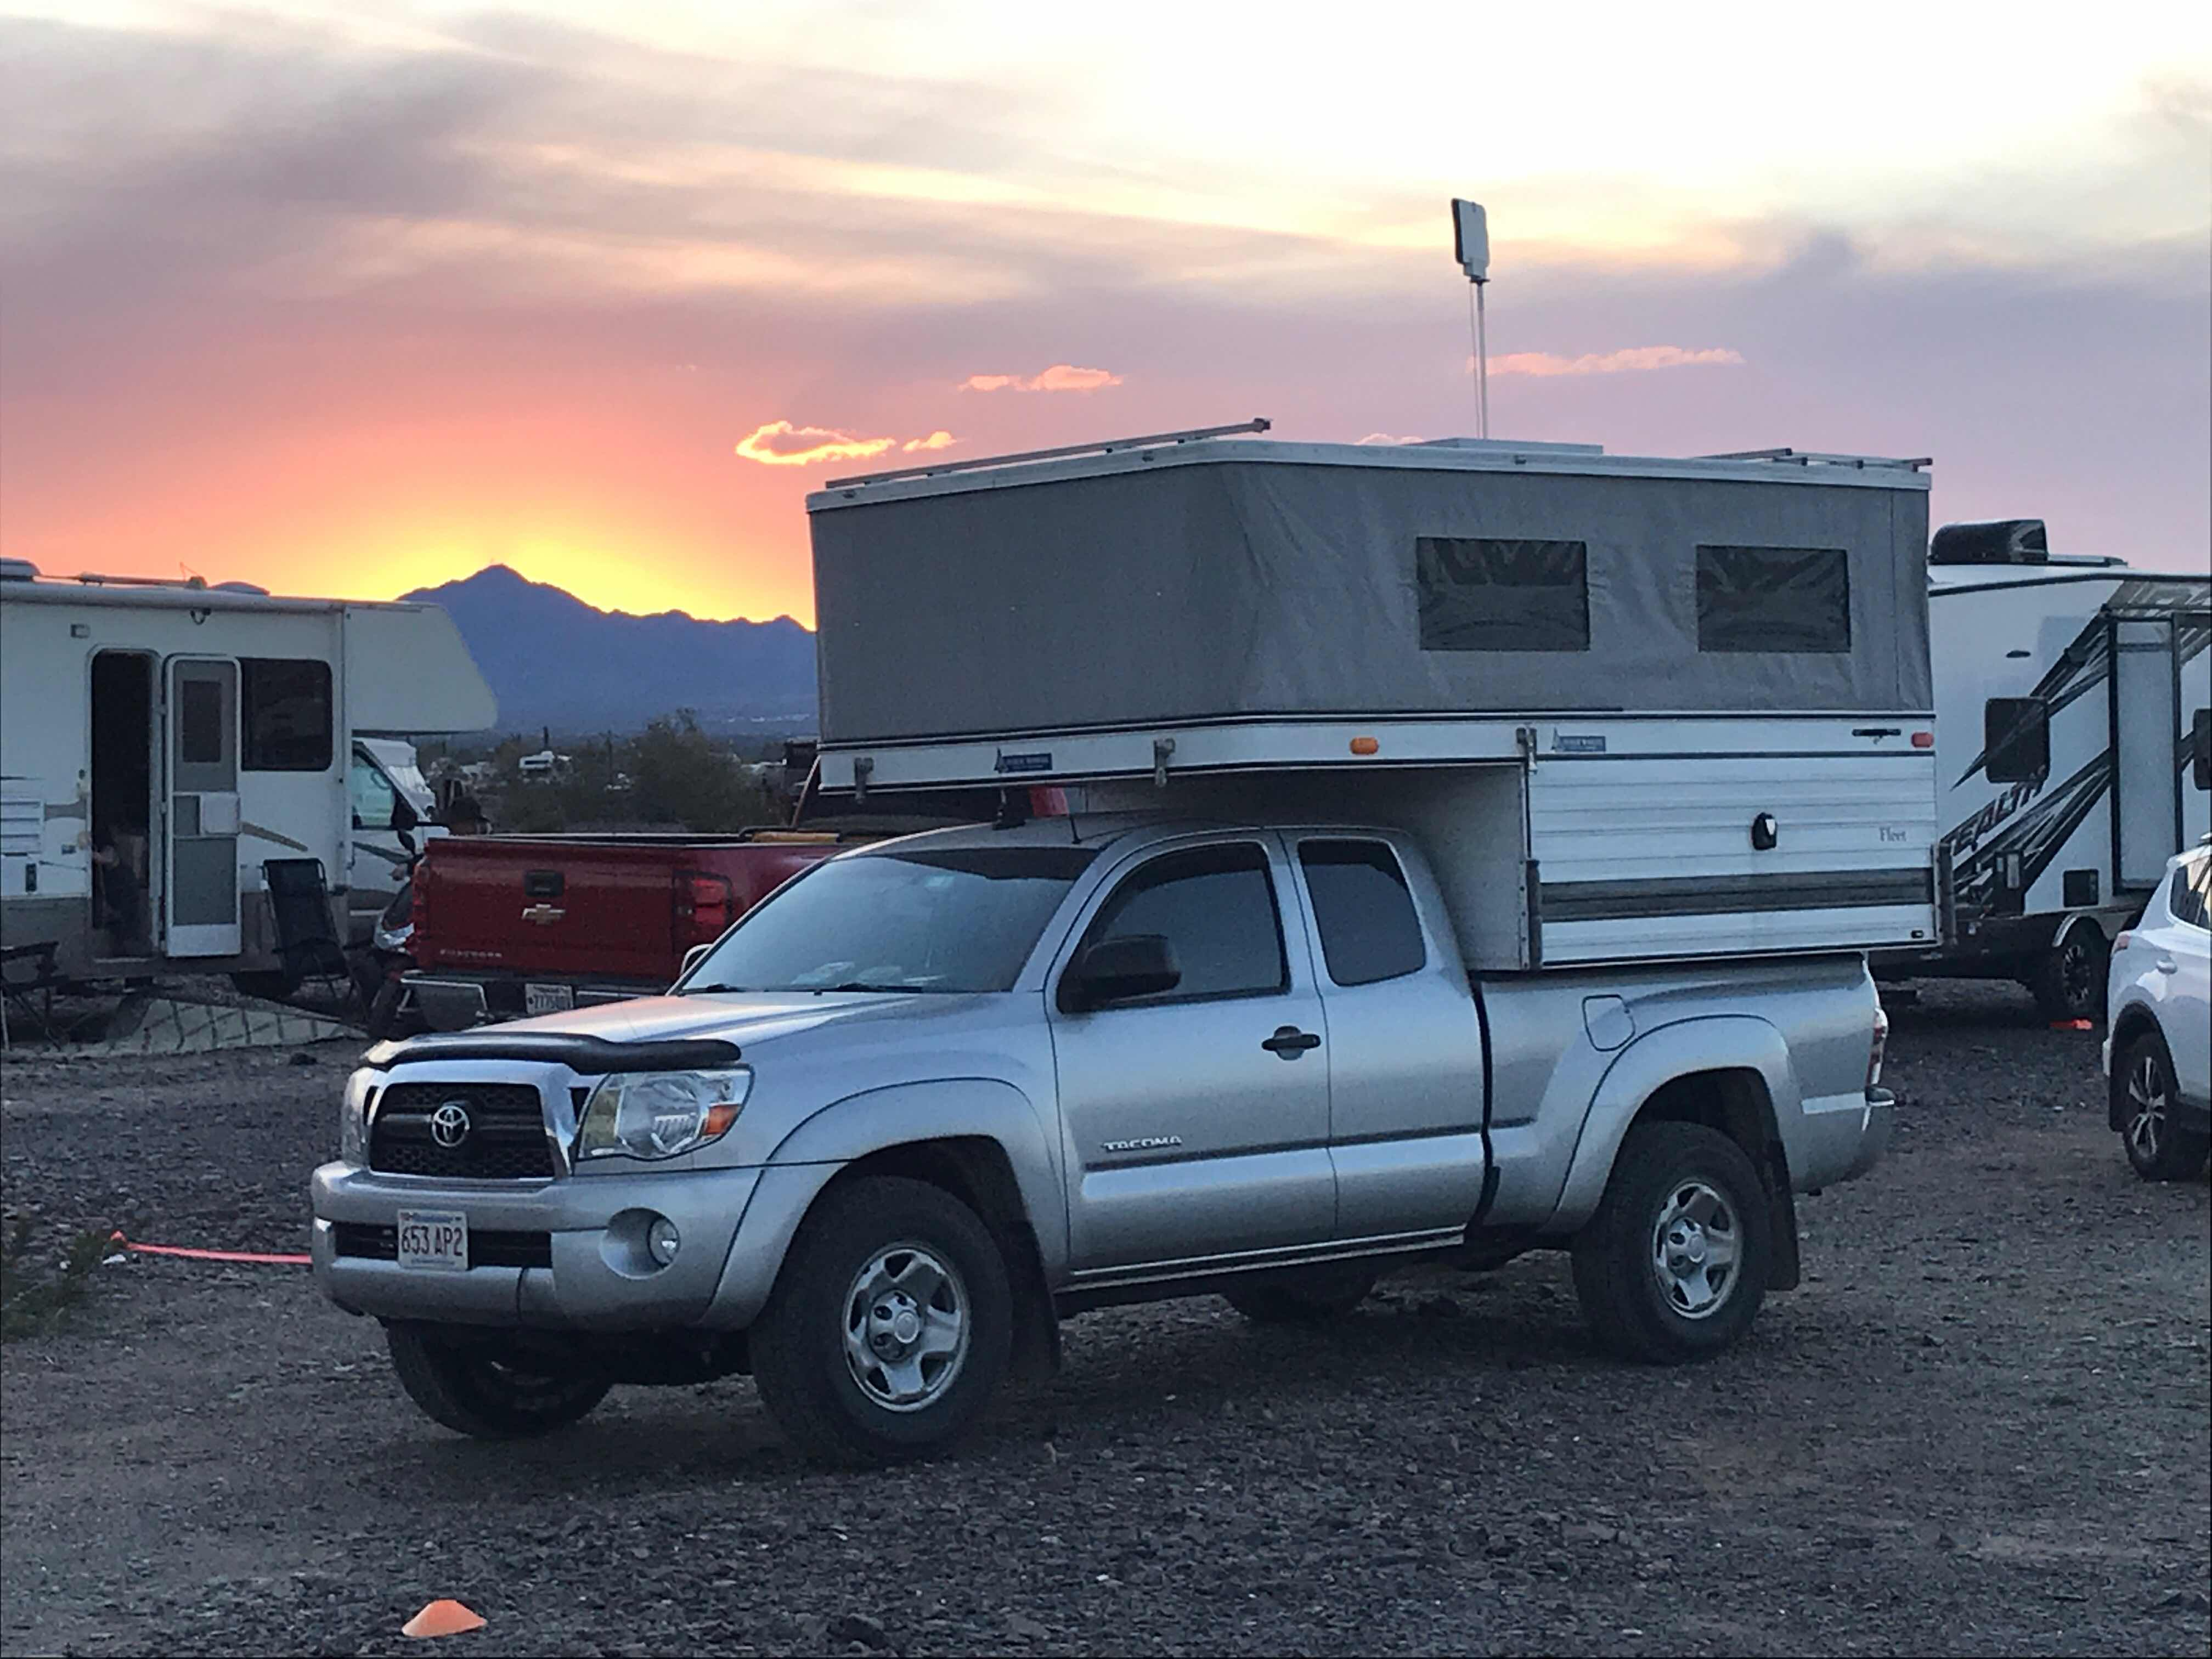 Brent's Travels: Antenna Pole For Four Wheel Camper